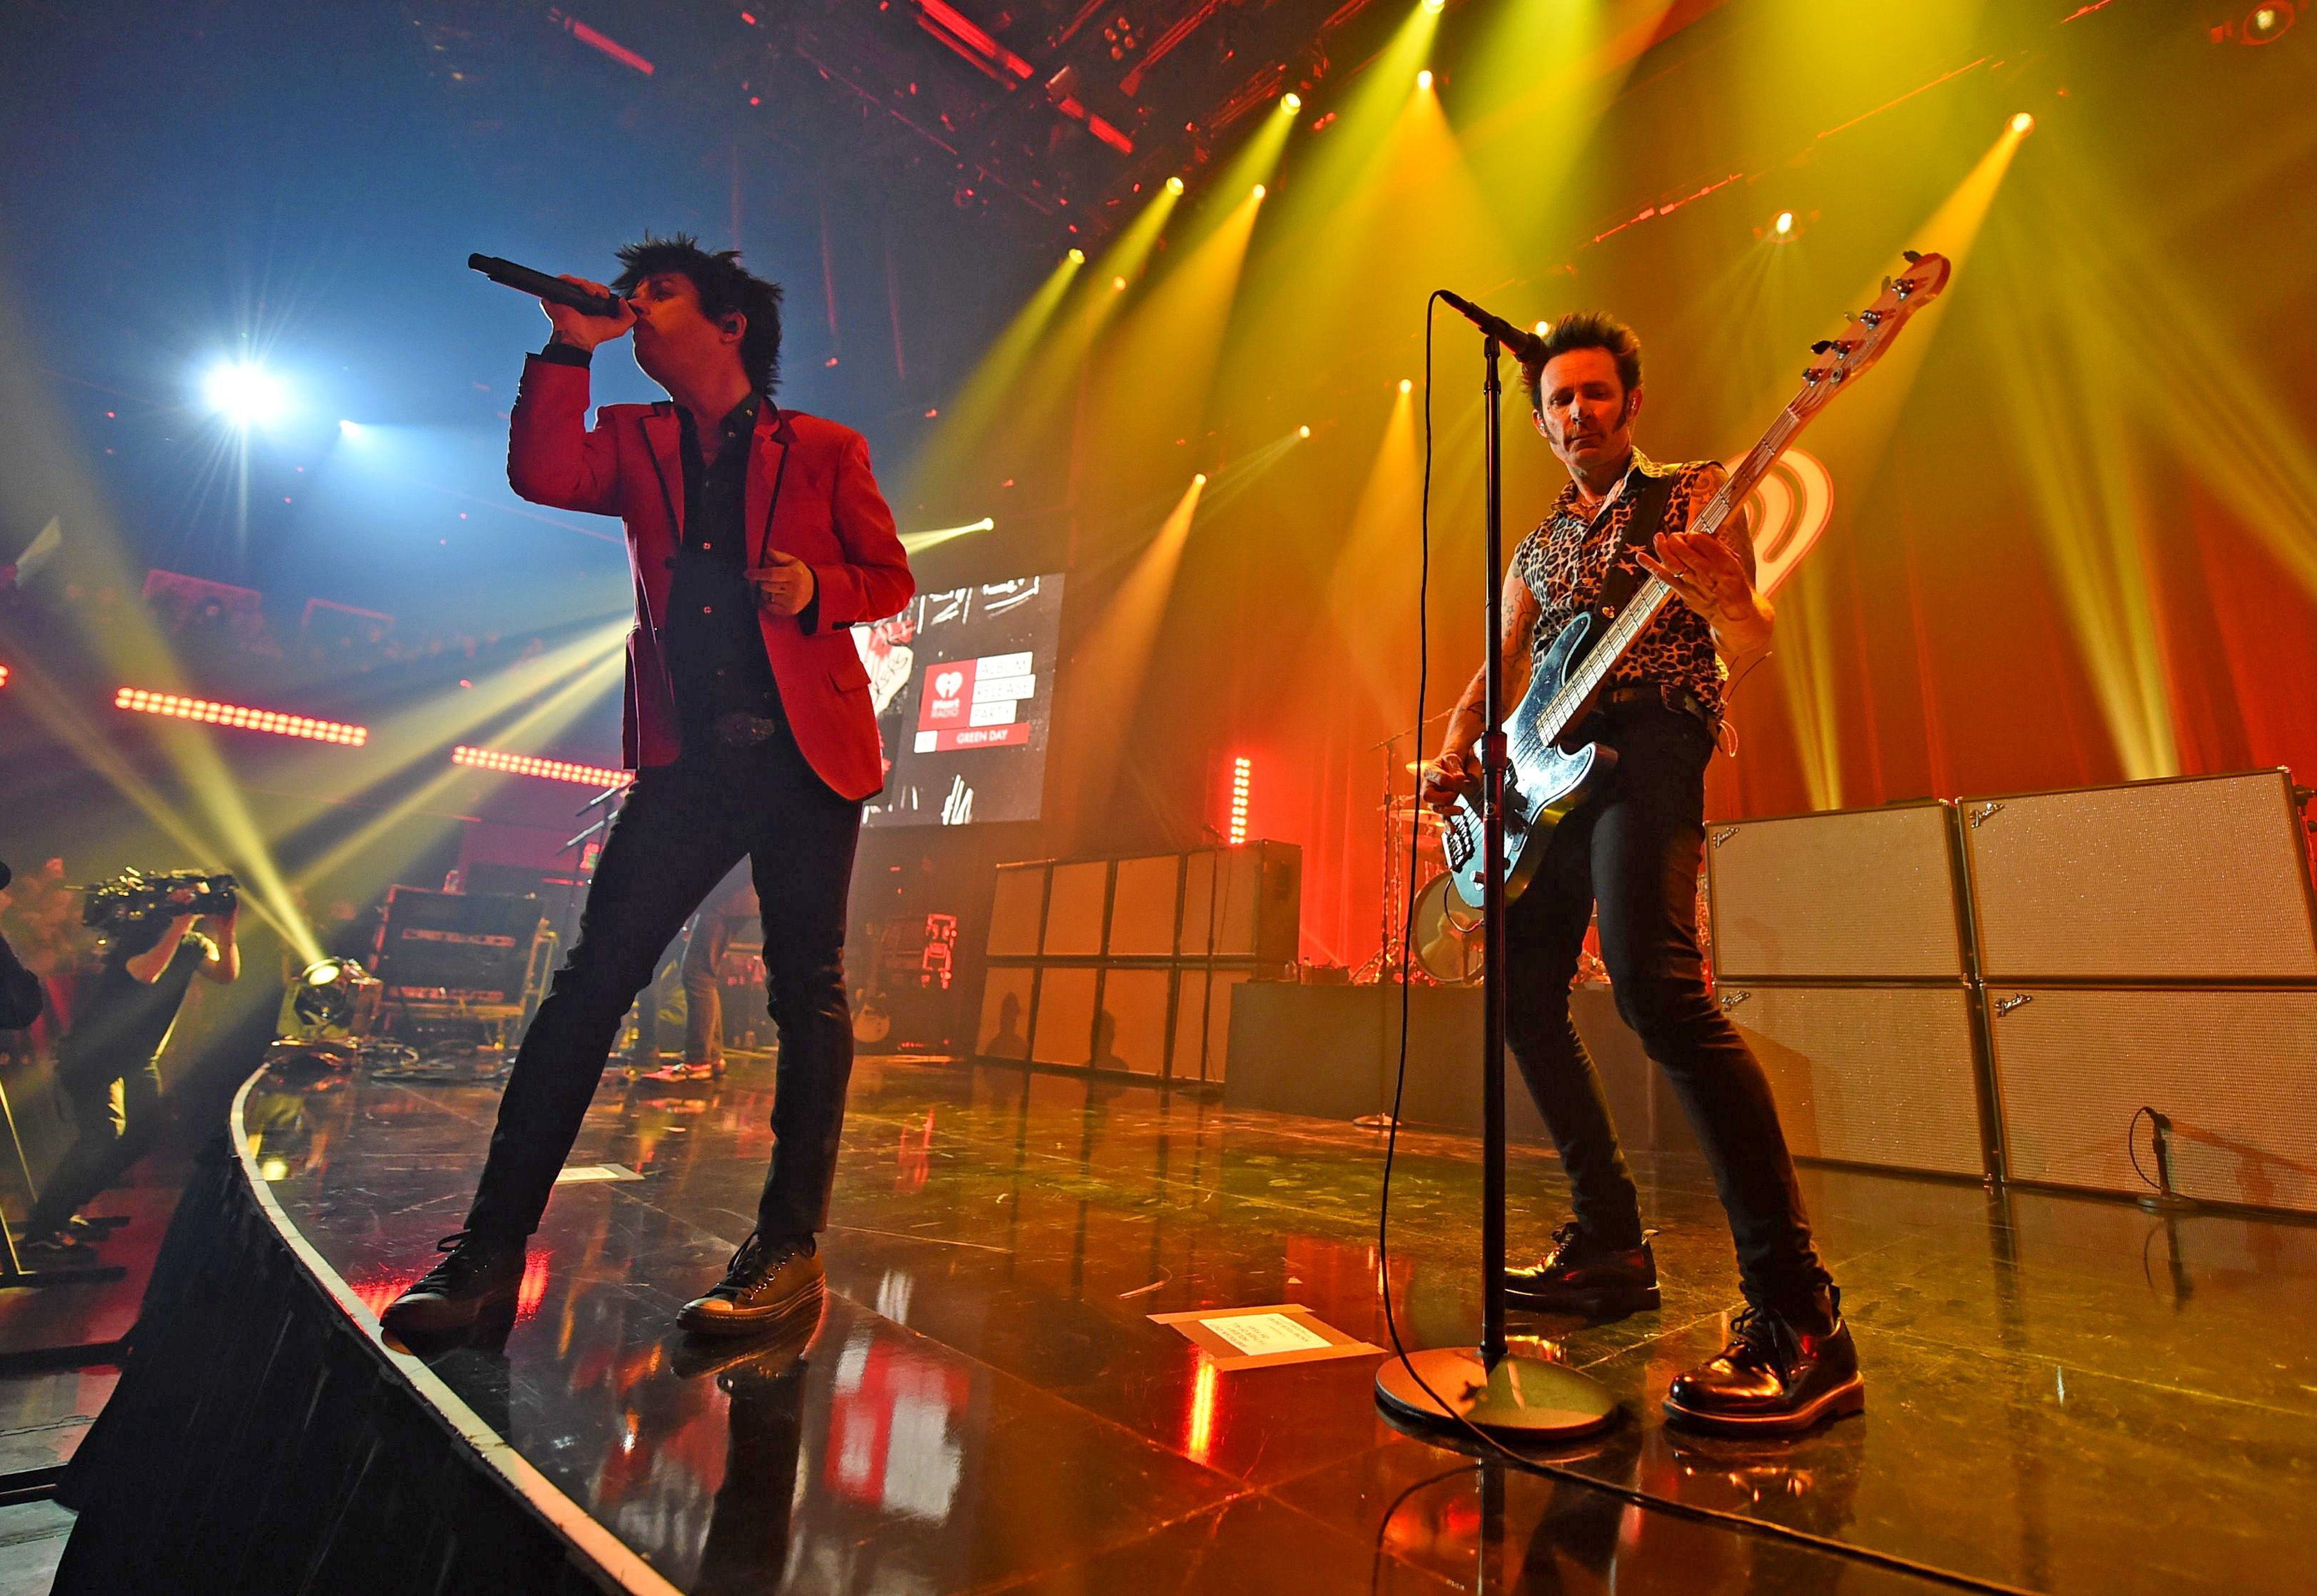 Billie Joe Armstrong and Mike Dirnt of Green Day perform onstage during the iHeartRadio Album Release Party on February 7 in Burbank, California.